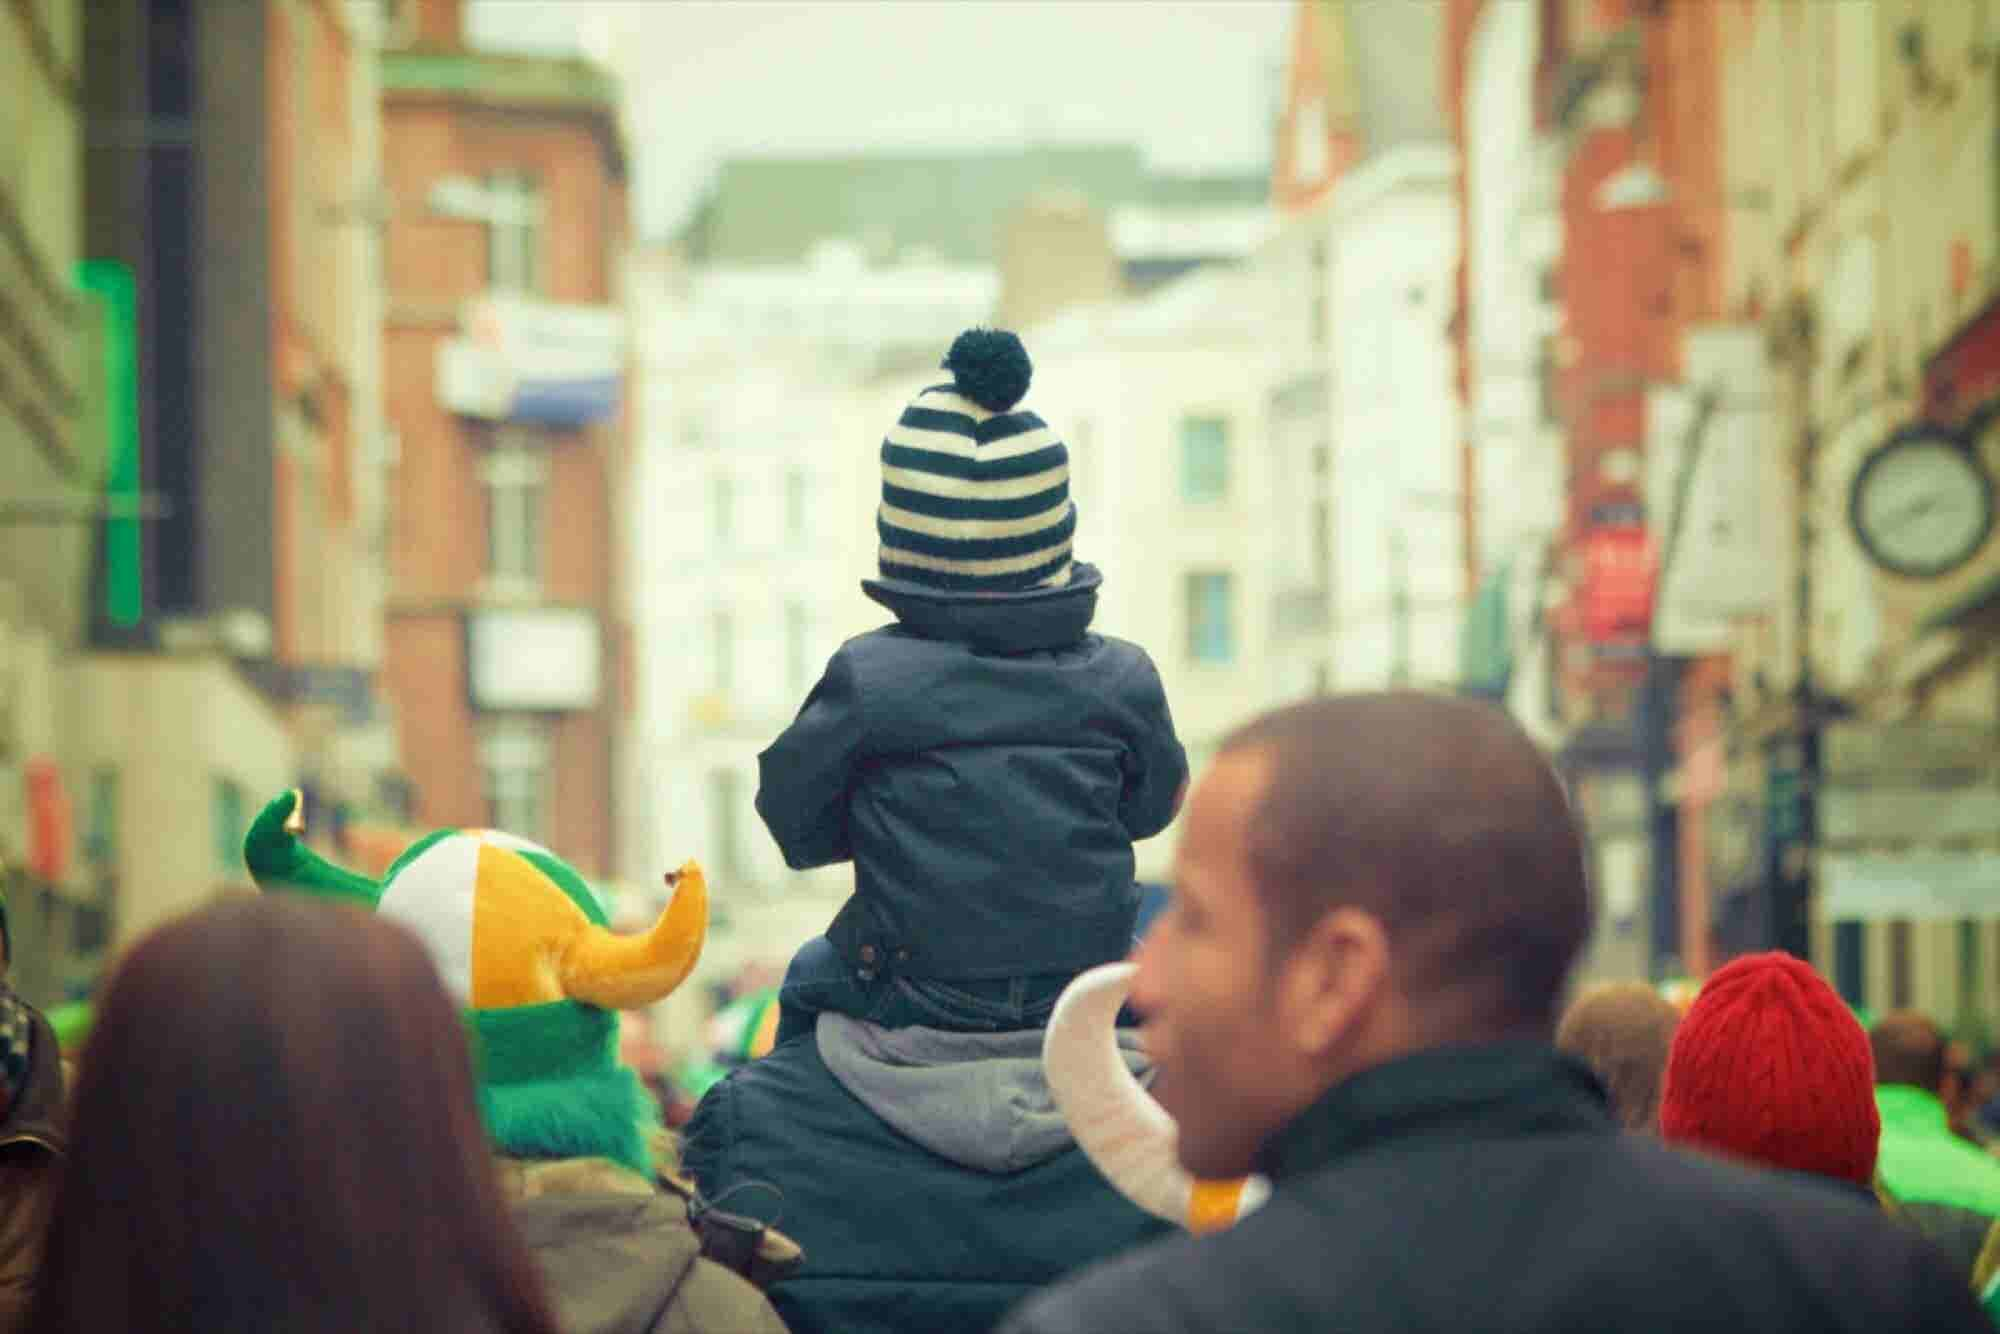 The Top 10 American Cities for Working Parents